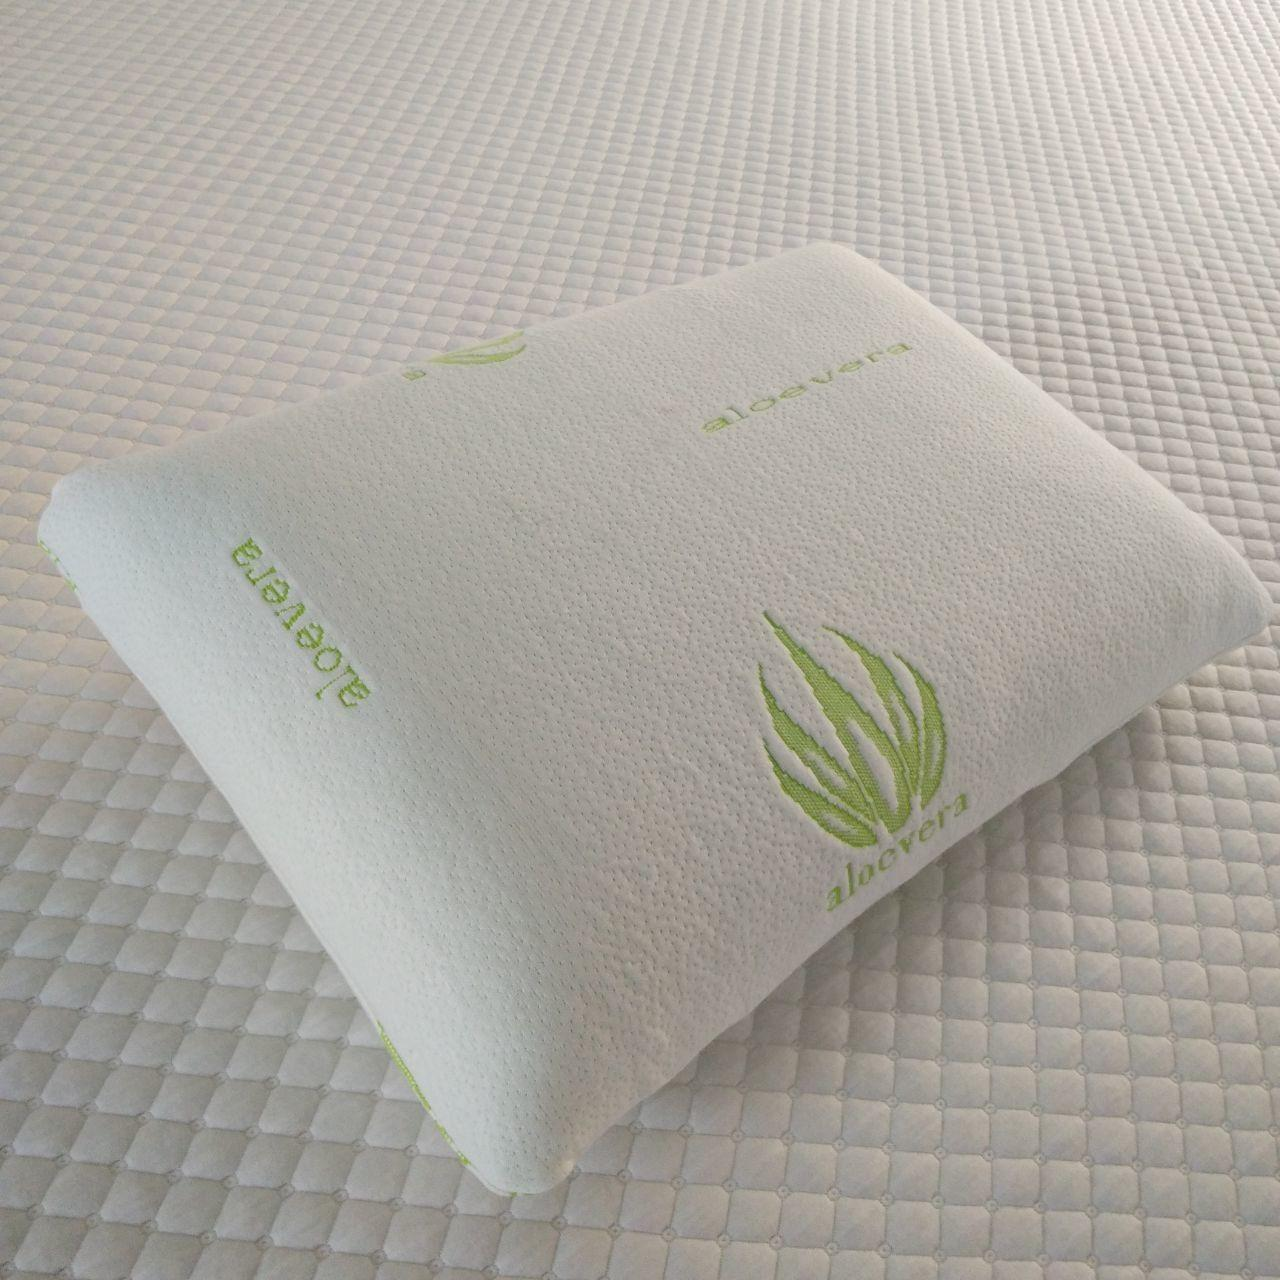 China Visco elastic aloe vera memory foam pillow,Hypoallergenic Pillow Cover Infused with Aloe Vera, King Size Stay Cool White on sale